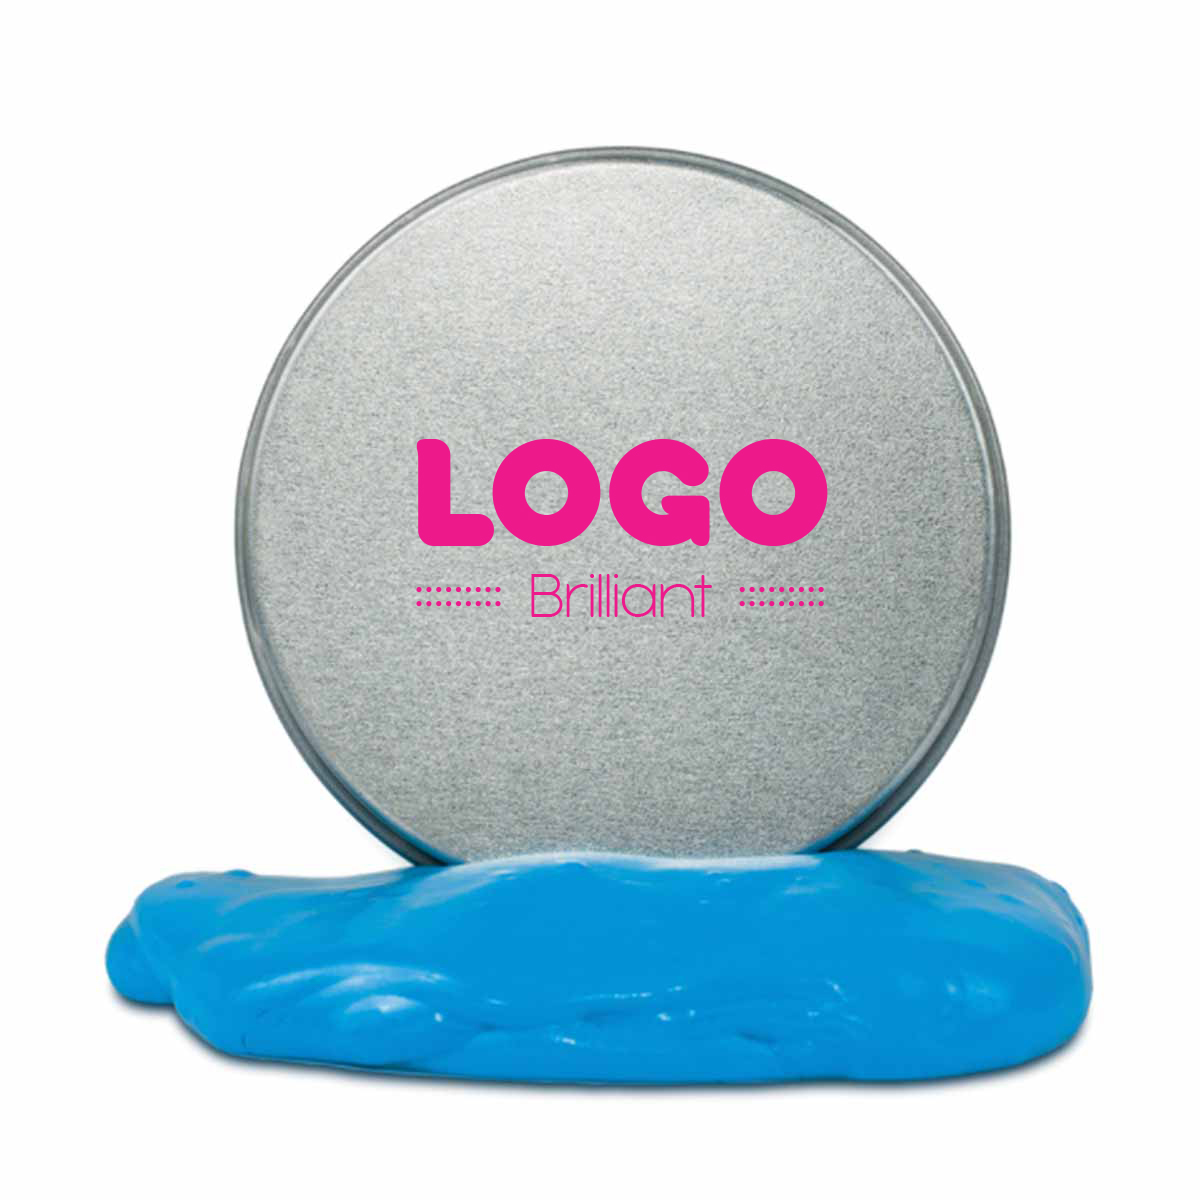 134844 smart putty one color imprint one location